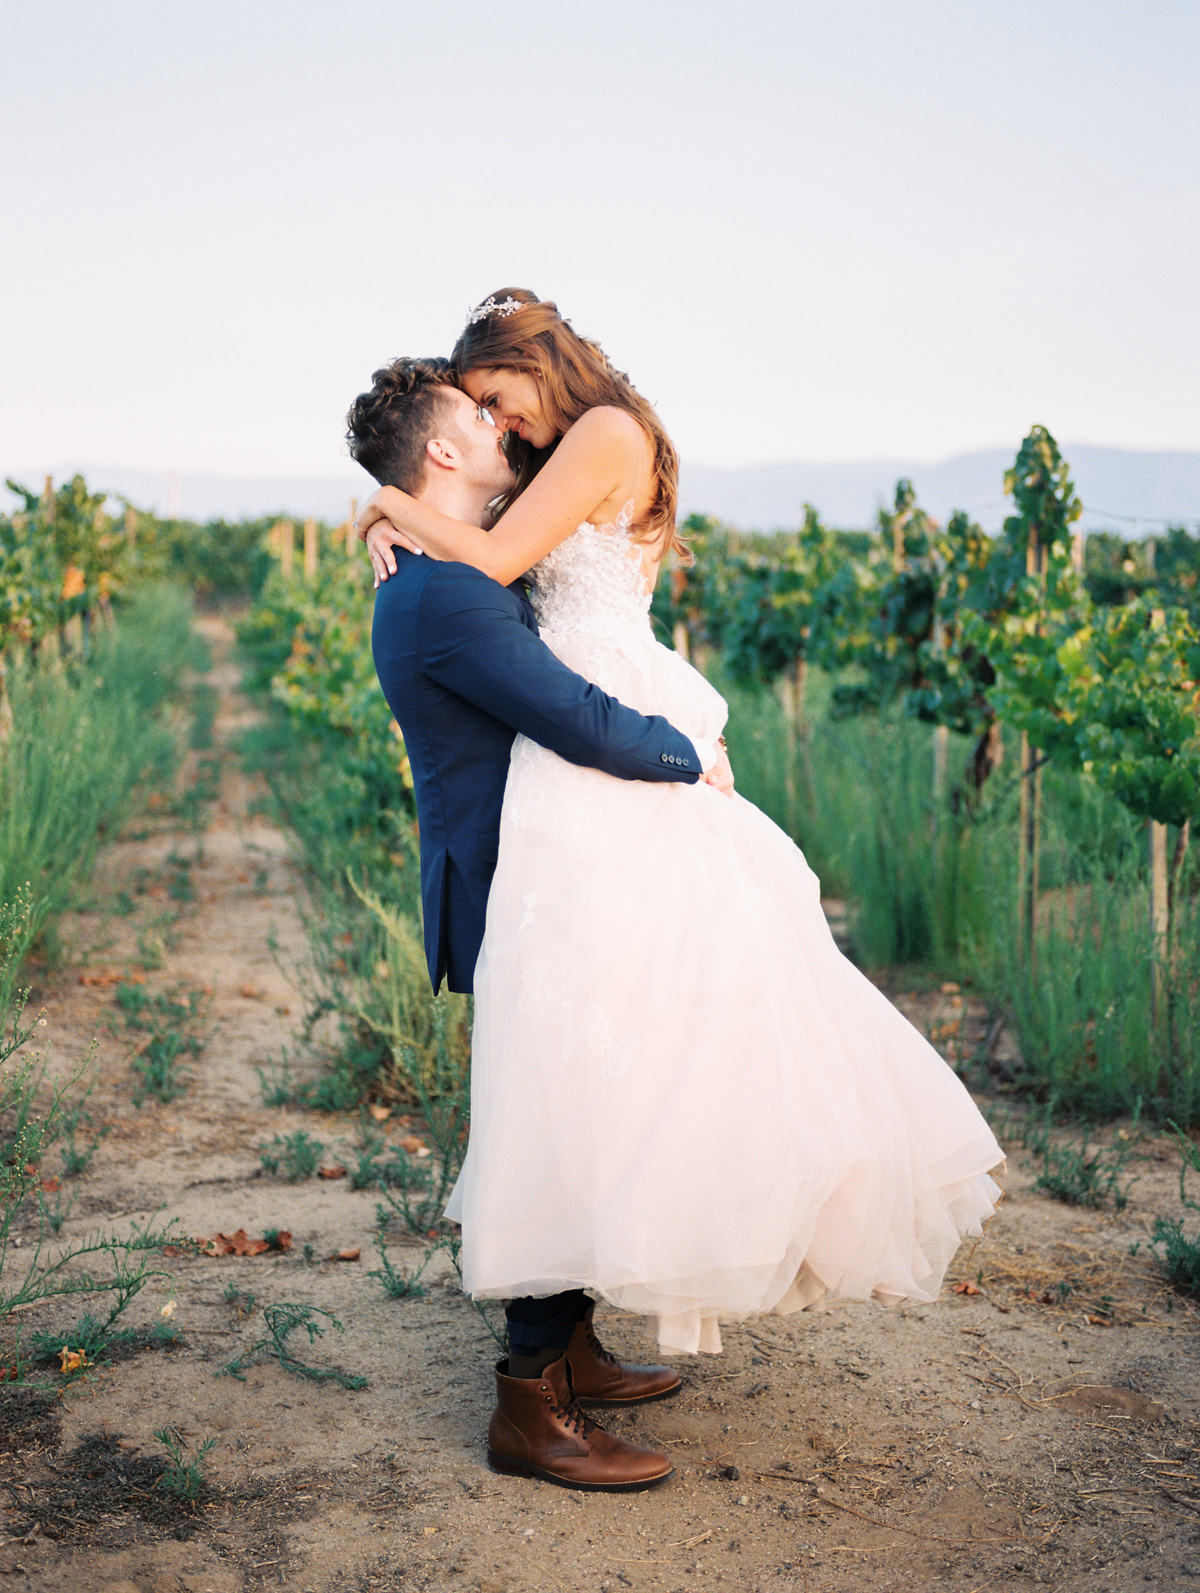 Groom smiling at bride  Harrison & Jocelyne's gorgeous Temecula wedding day at Wiens Family Cellars captured by Temecula wedding photographers Betsy & John